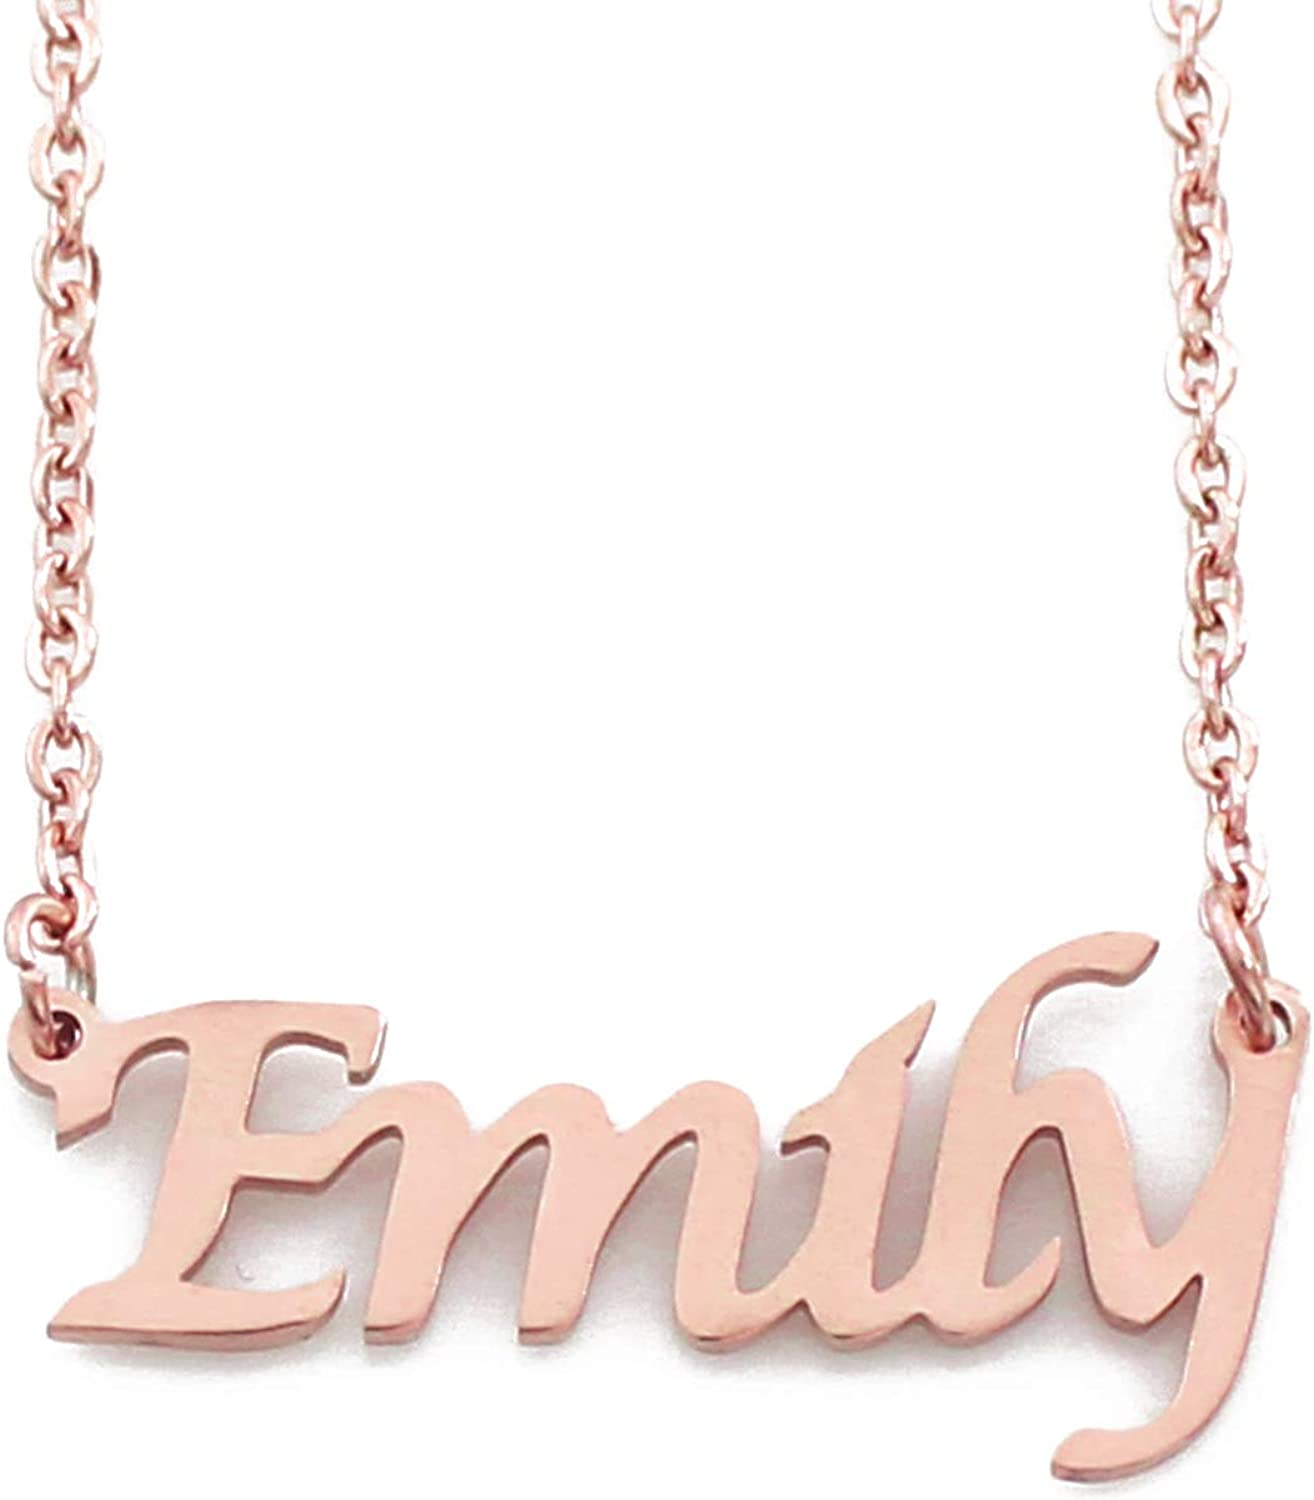 Personalized Disney Name Necklace Yellow Gold or Rose Gold Emily Charm